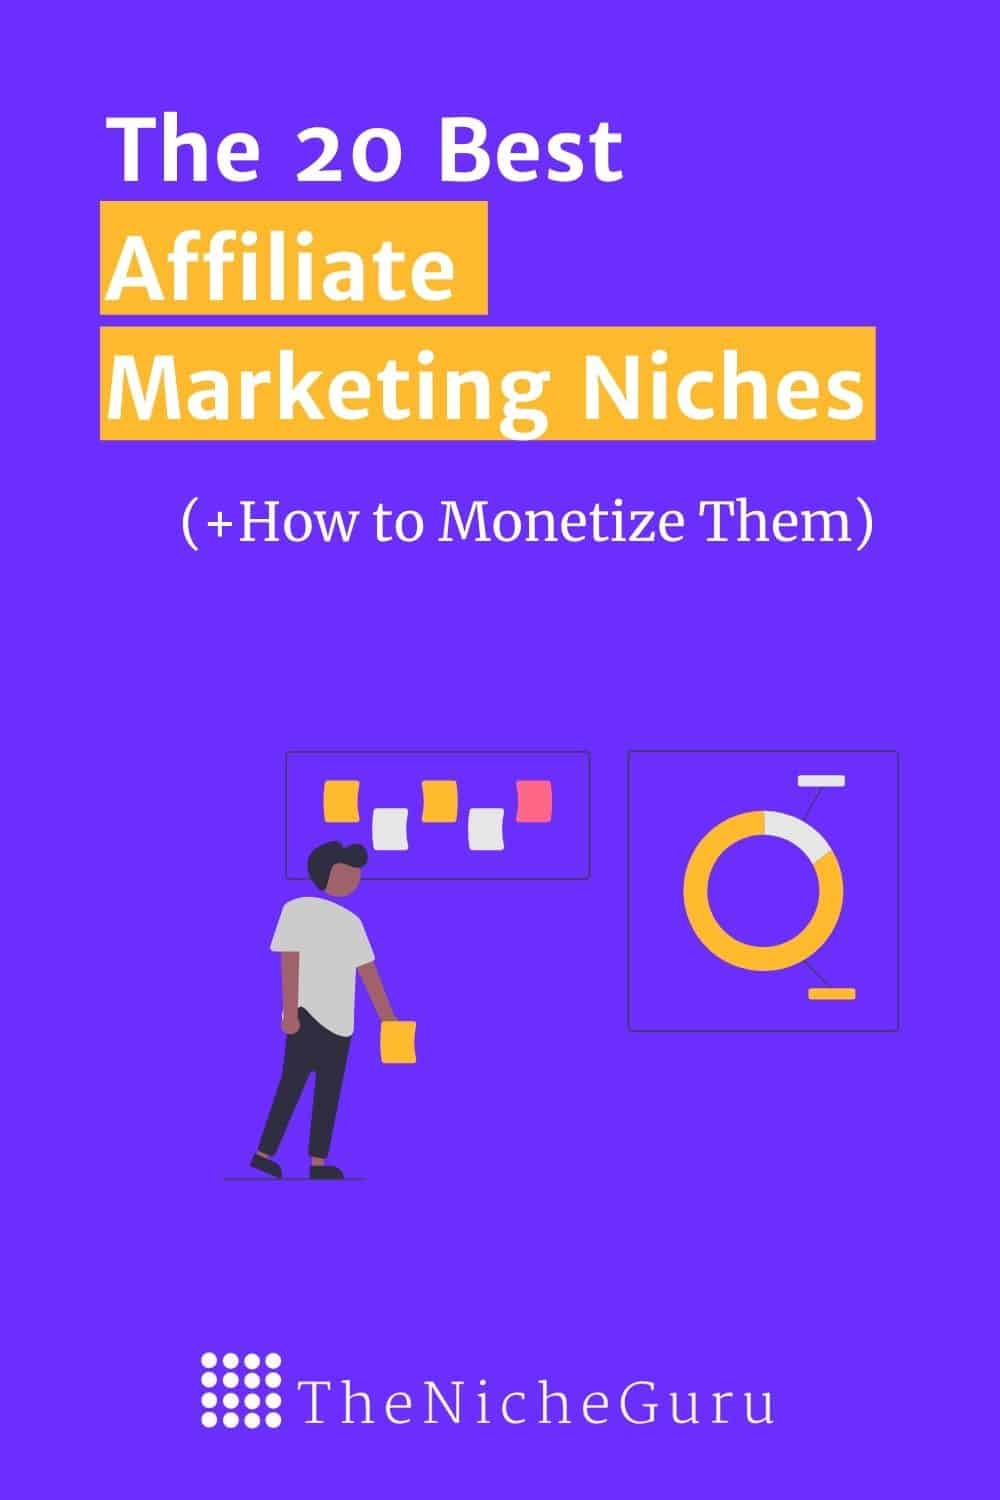 Are you looking for the most profitable affiliate marketing niches to make money online? Check the 20+ best affiliate marketing niches right now,. Making money online in 2020 has never been easier with affiliate marketing. #affiliatemarketingtips #affiliatemarketingforbeginners #affiliatemarketingstrategy #affiliatemarketing #niche #nichemarketing #nichetips